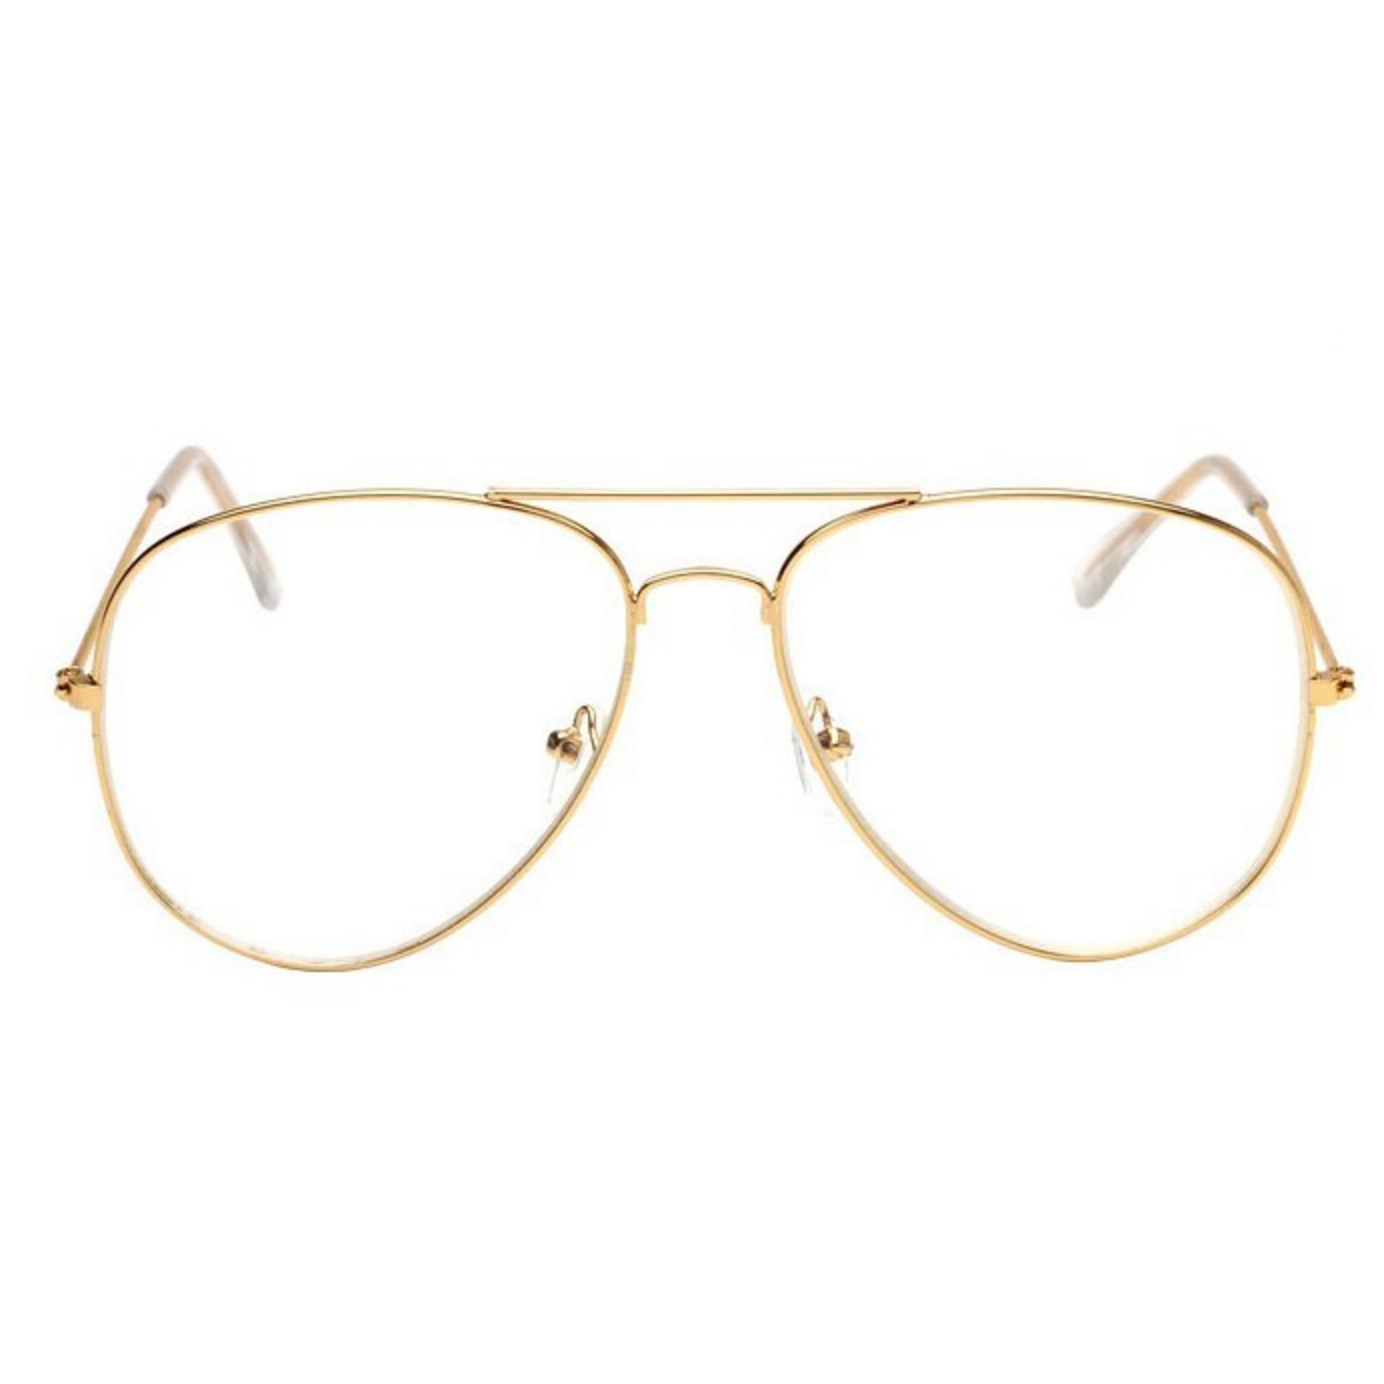 Unique Aviator The Classic Glasses | caluandco.com.